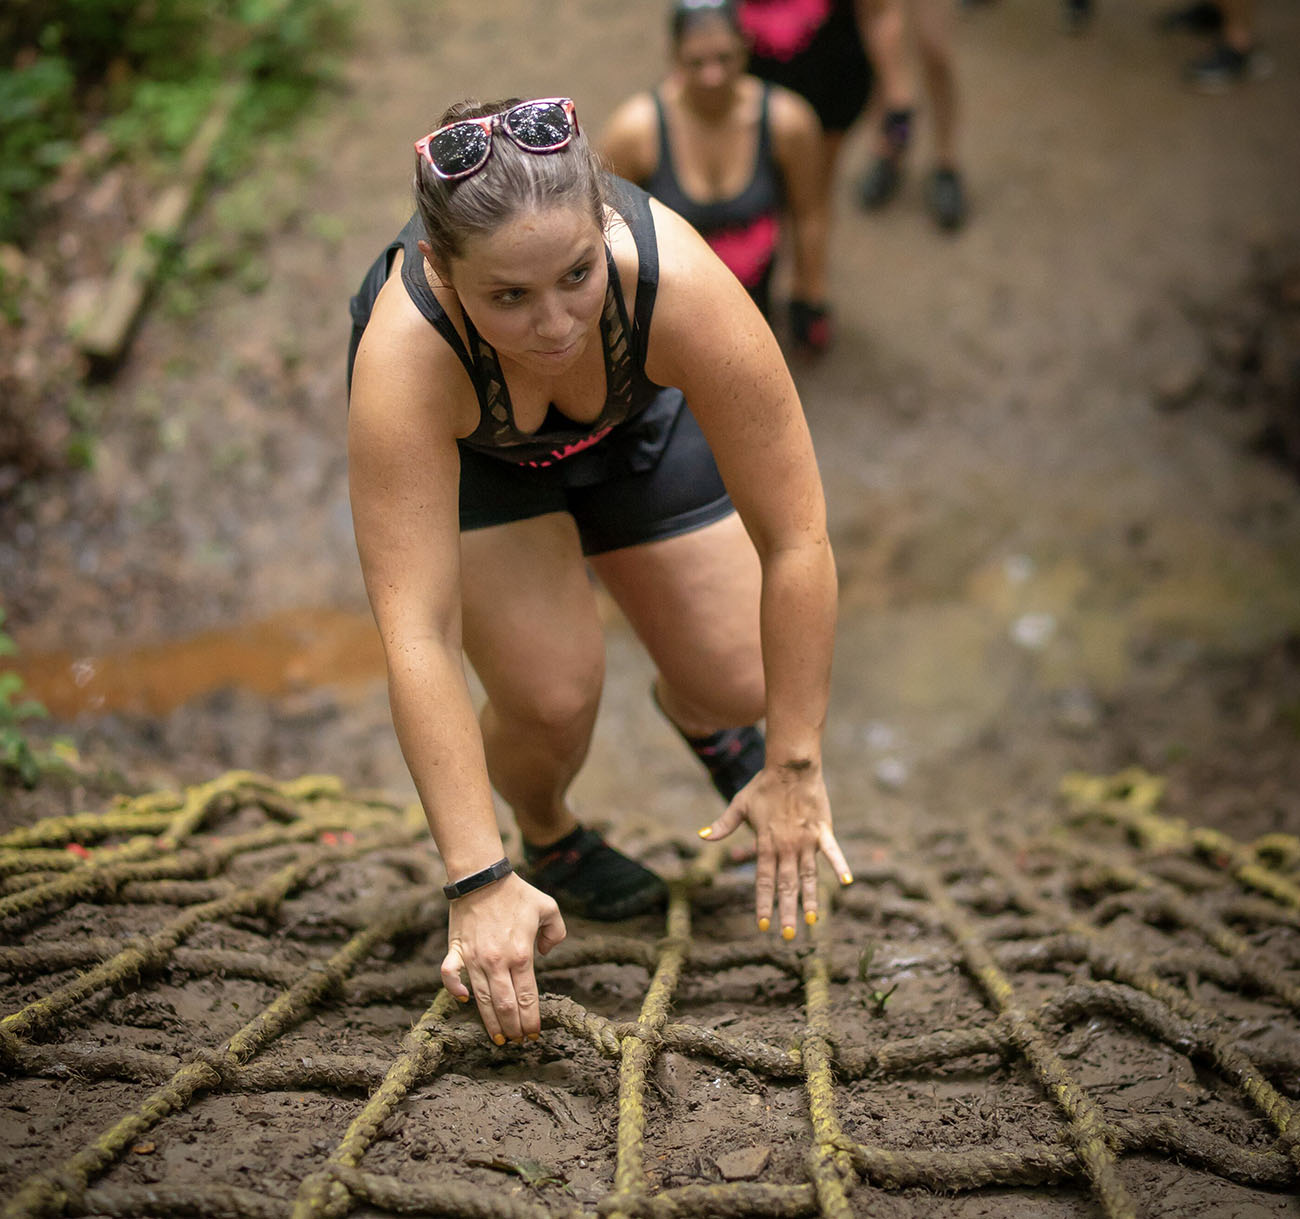 A woman climbs the rope ladder during the 2018 Gritty Chix Mud Run at ACE Adventure Resort in Southern WV.